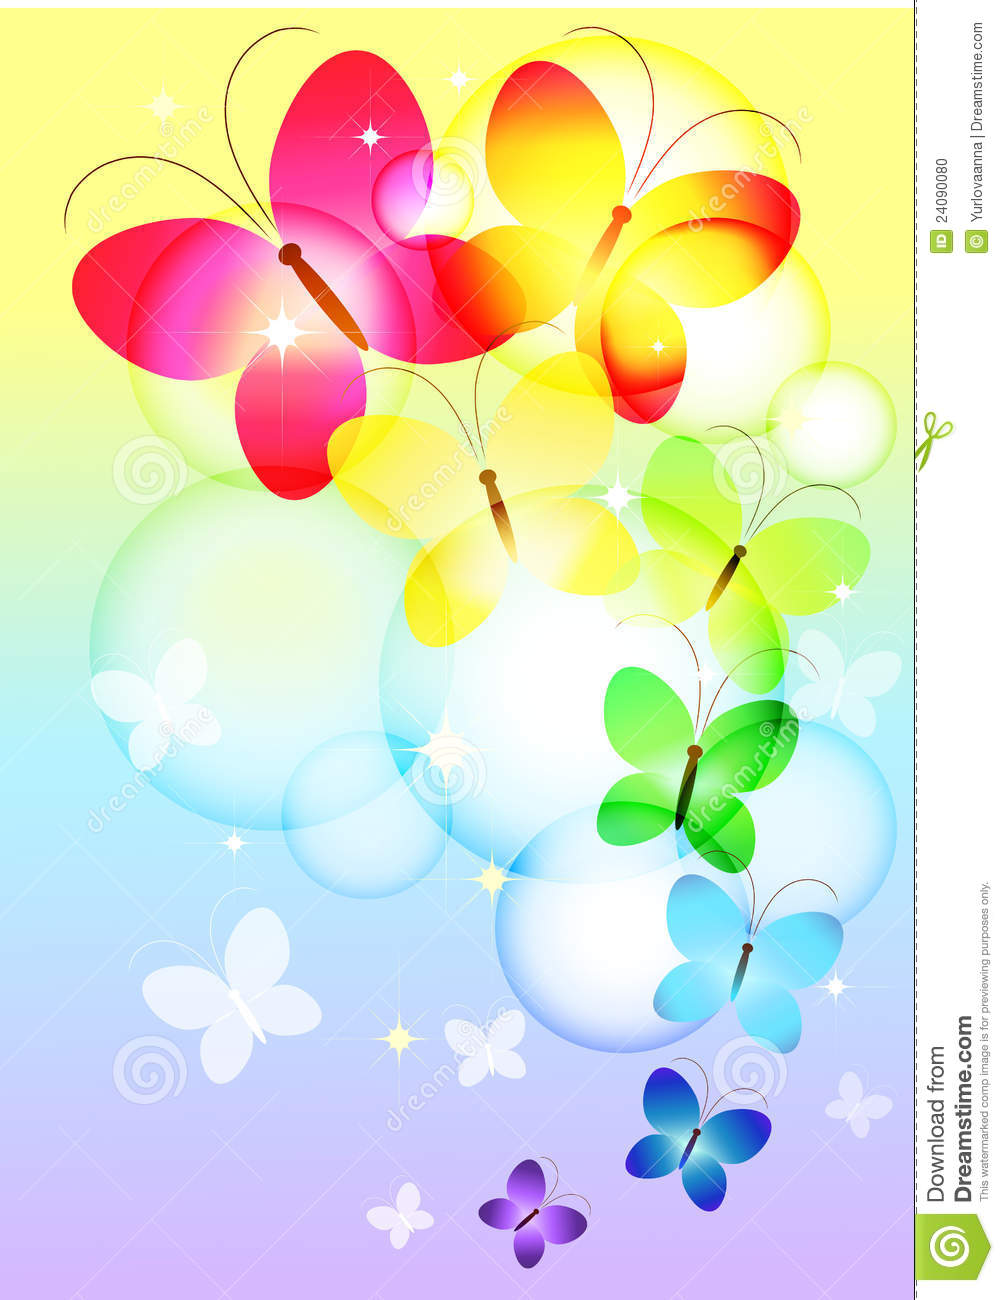 Colorful Butterflies Flying Stock Photo - Image: 24090080